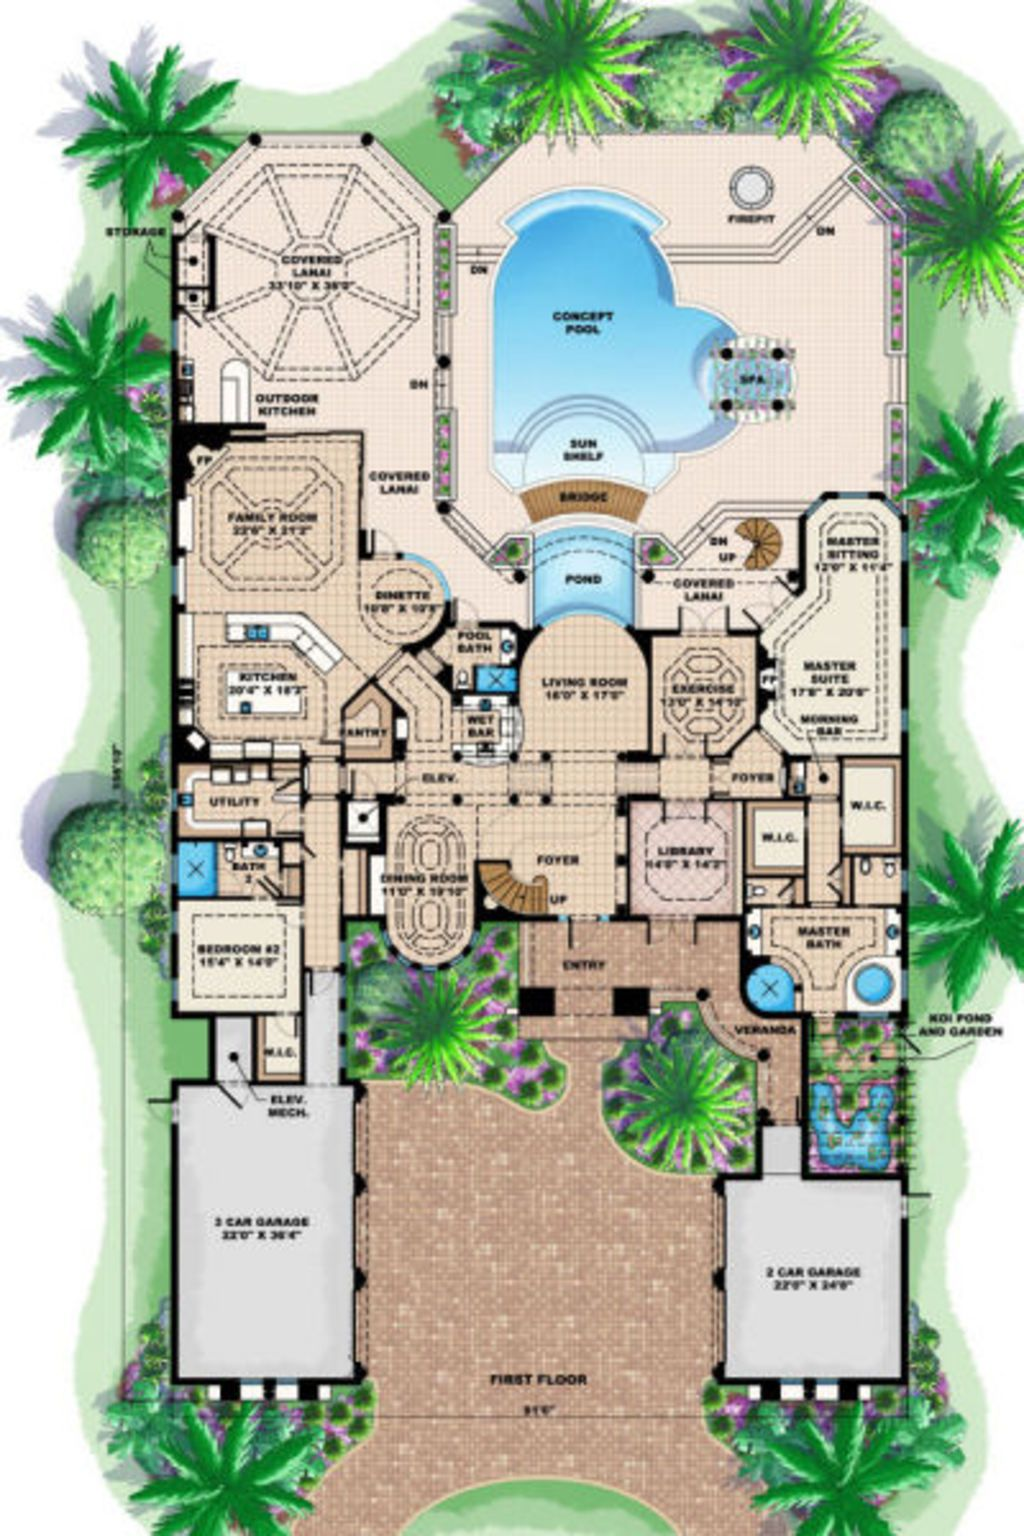 I'd replace the pool with a lawn and the koi pond with a ... on horse stable house plans, snow house plans, pool house plans, marsh house plans, jackson house plans, spa house plans, bank barn house plans, gypsy wagon house plans, pardee house plans, canal front house plans, pond building costs, pond building blueprints, miller house plans, screened porch house plans, house house plans, main house plans, 30x40 barn house plans, park house plans, nature house plans,